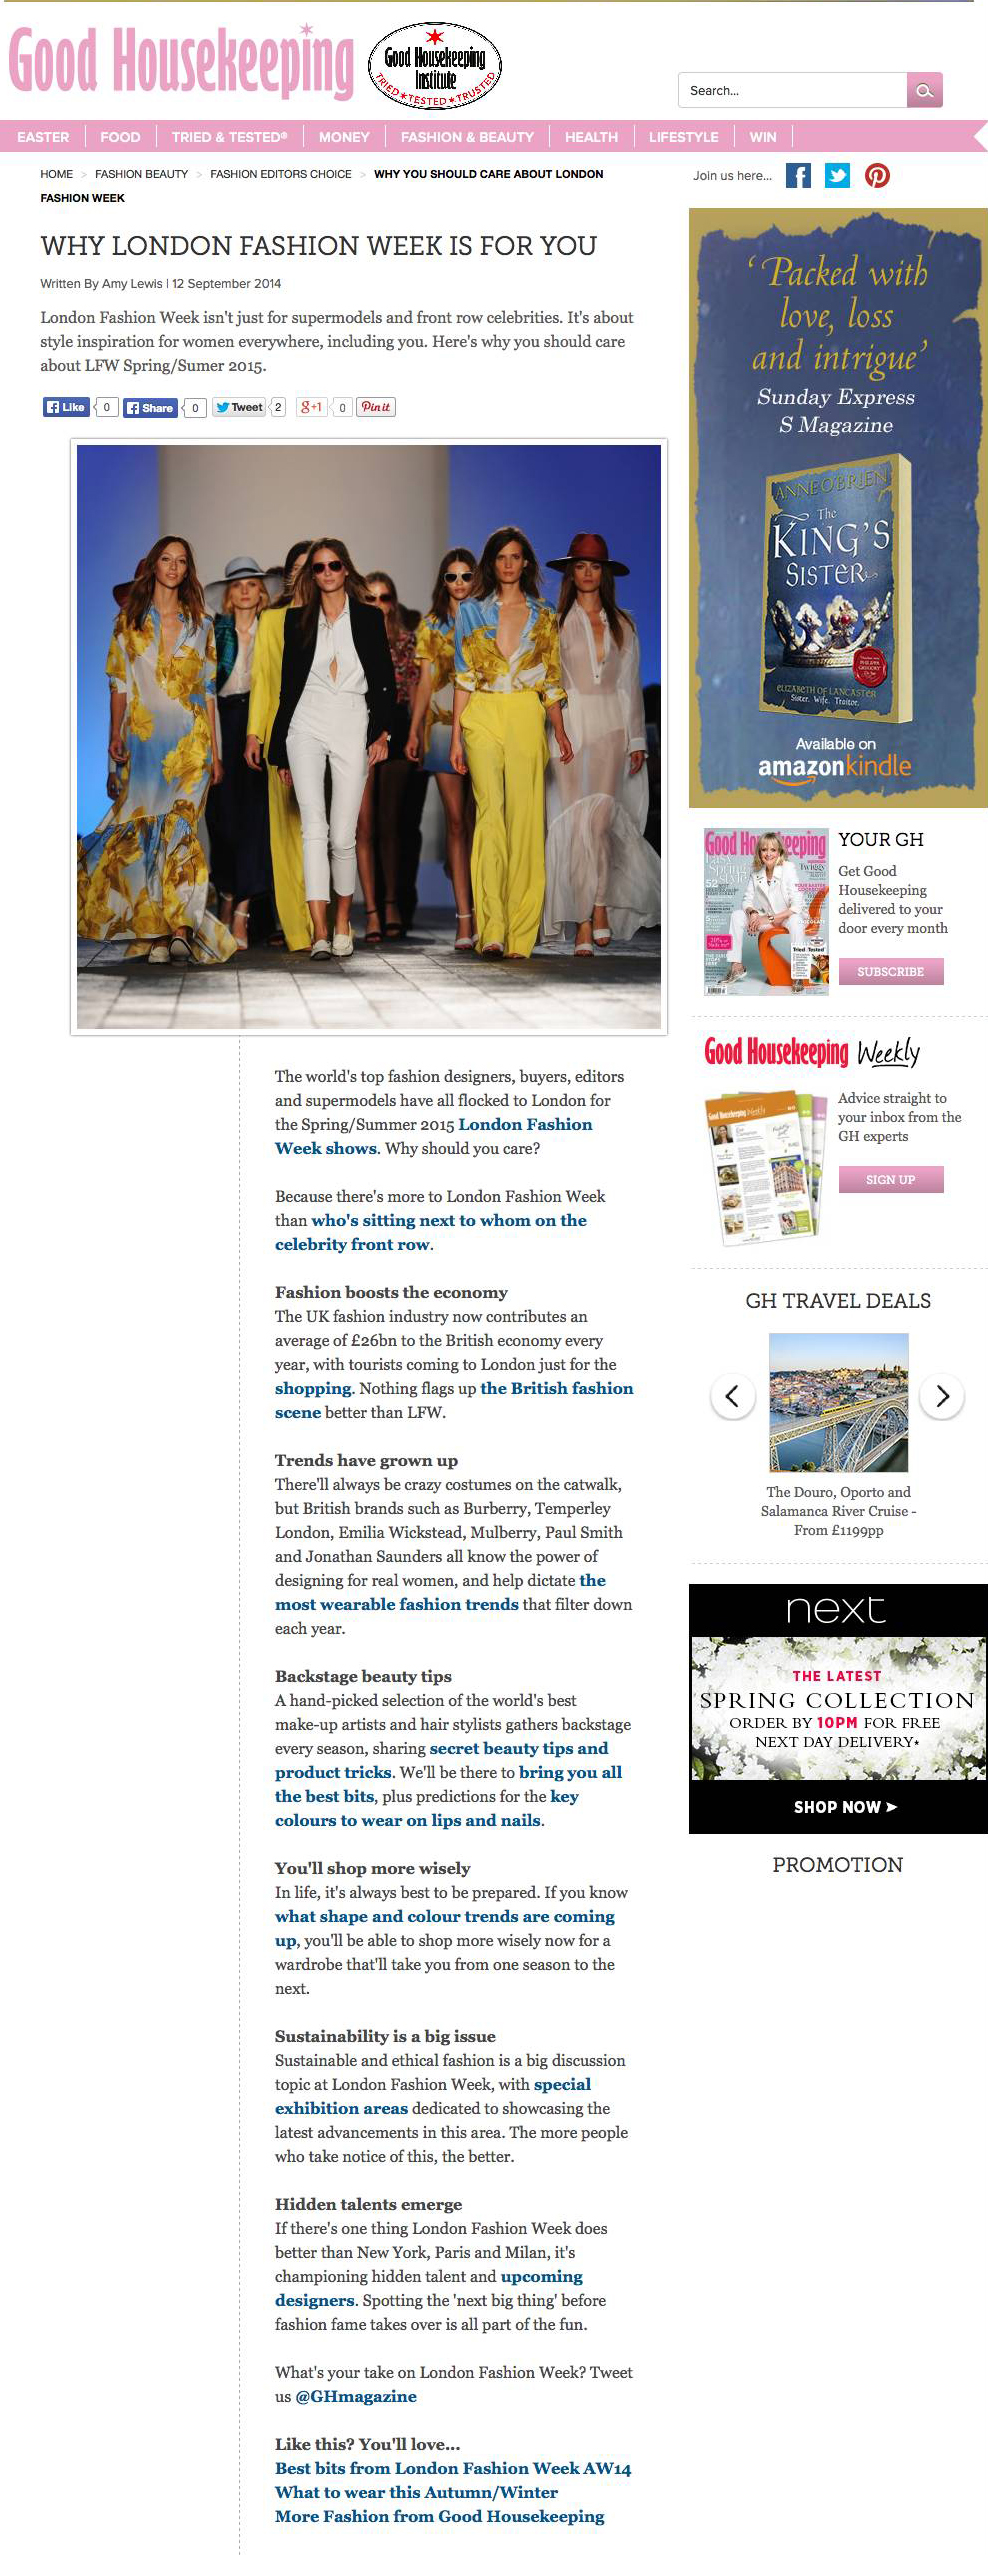 London_Fashion_Week_highlights_-_Fashion_Tips_-_Good_Housekeeping_-_2015-03-17_22.11.22.png